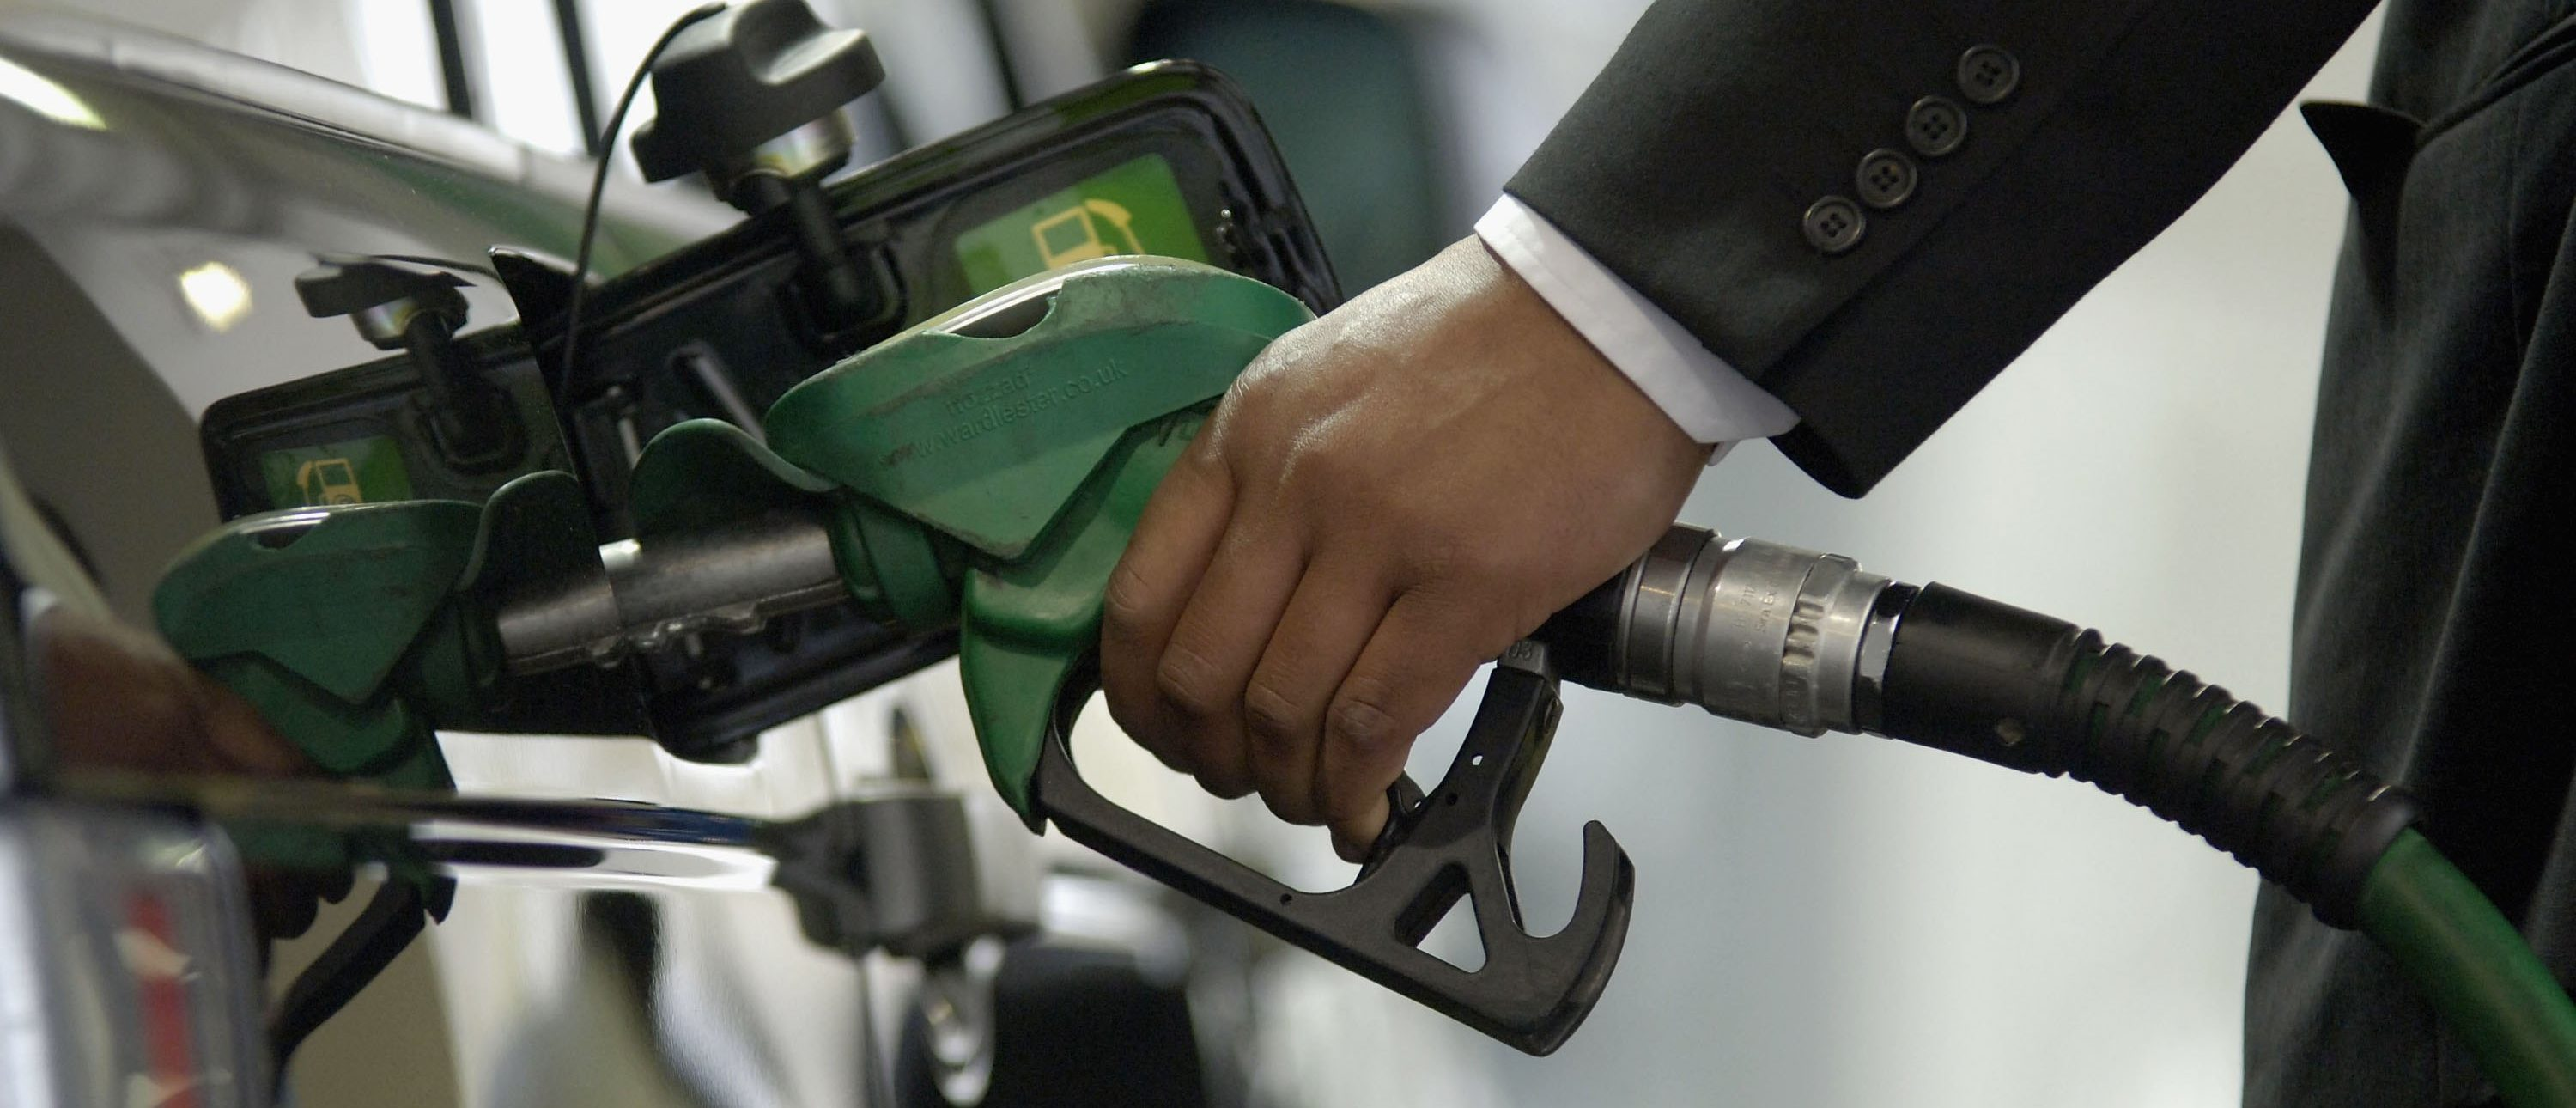 LONDON - APRIL 20: A customer fills his petrol tank at BP petrol station on Park Lane, April 29, 2006 in London, England. Crude oil has hit a record high of $74.22 a barrel on the seventh consecutive day, setting a new price peak. (Photo by Toby Williams/Getty Images)